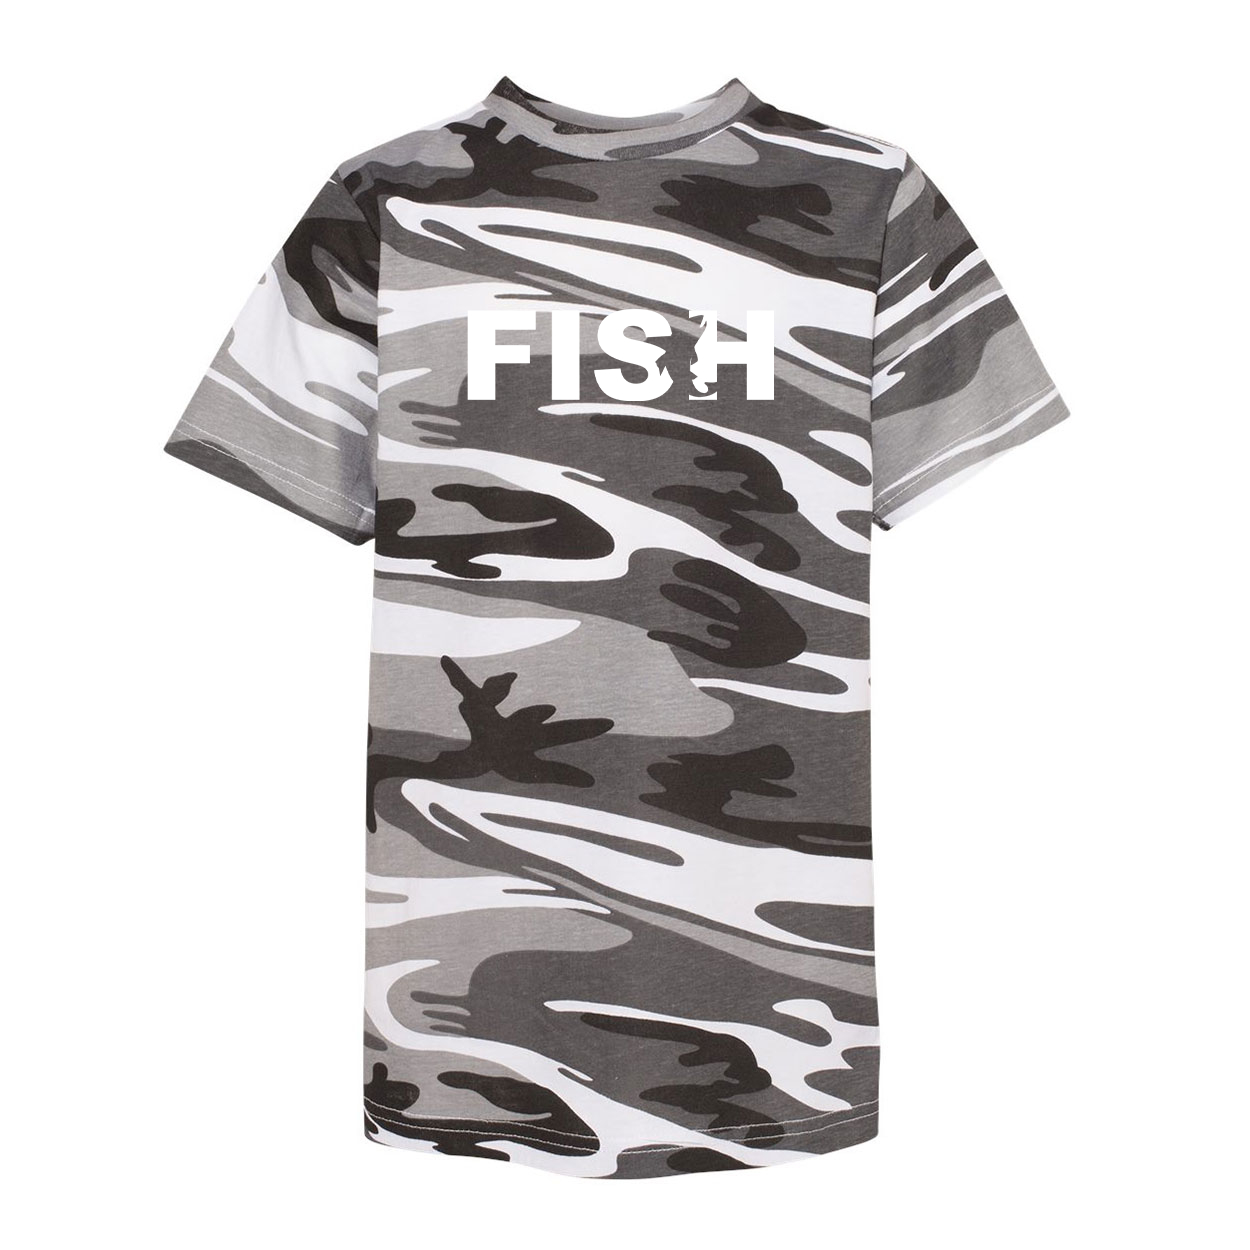 Fish Catch Logo Classic Youth Unisex T-Shirt Urban Camo (White Logo)